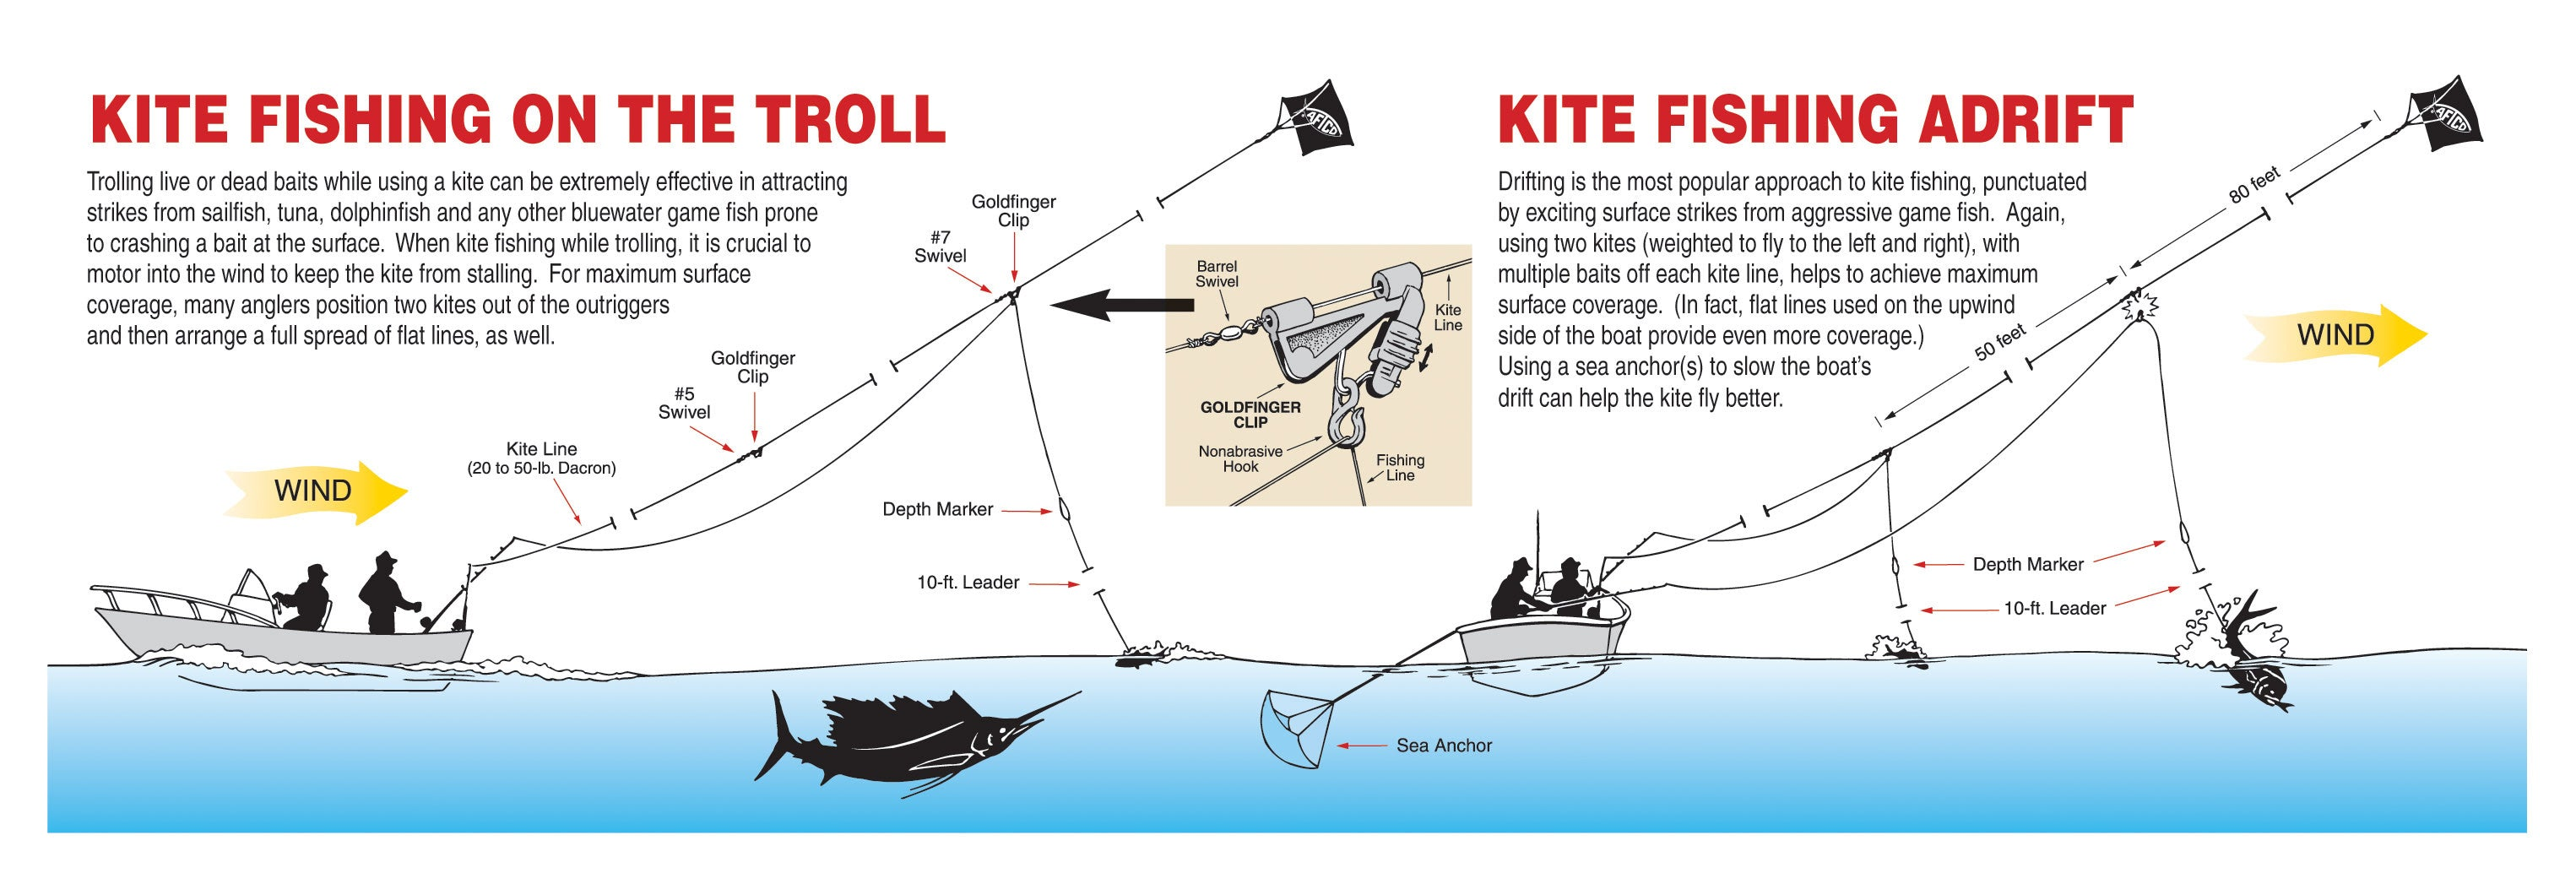 Kite Clip Kit